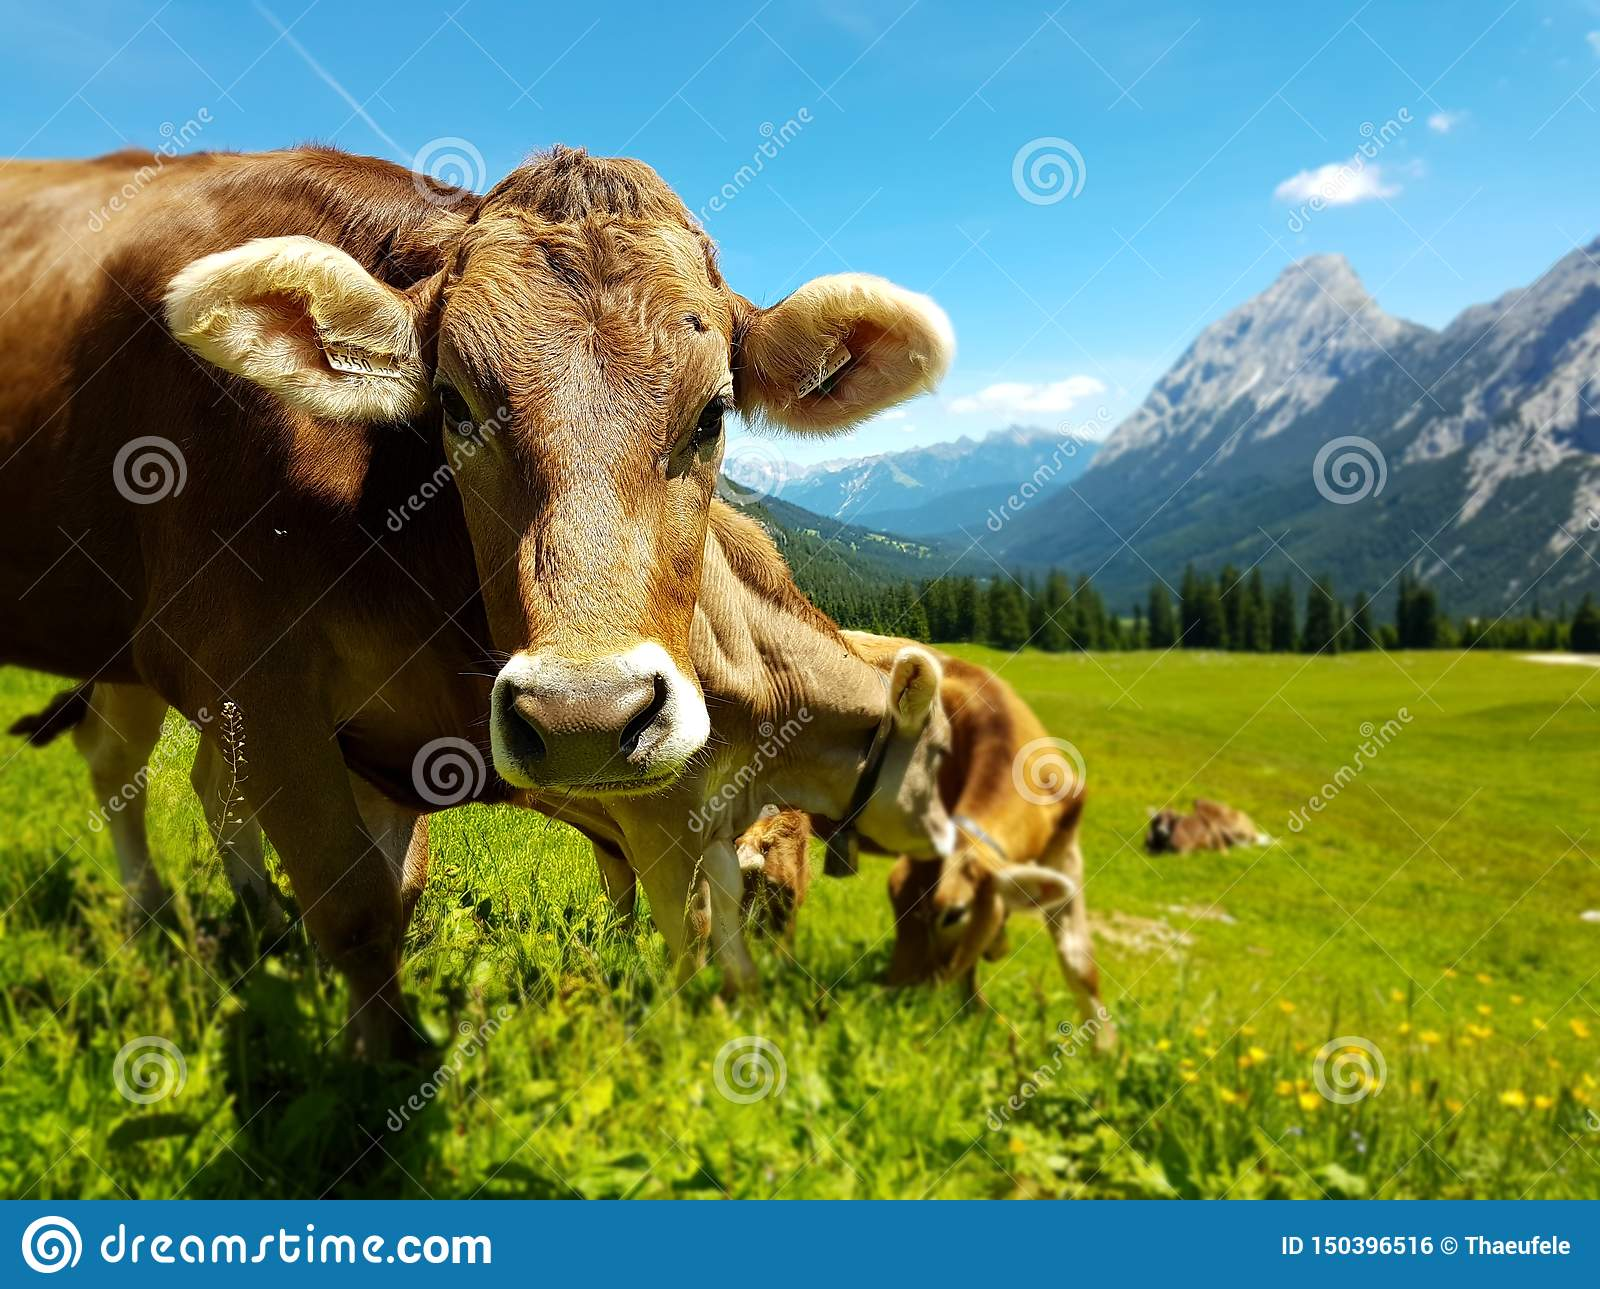 Brown cow grazing on meadow in mountains. Cattle on a pasture